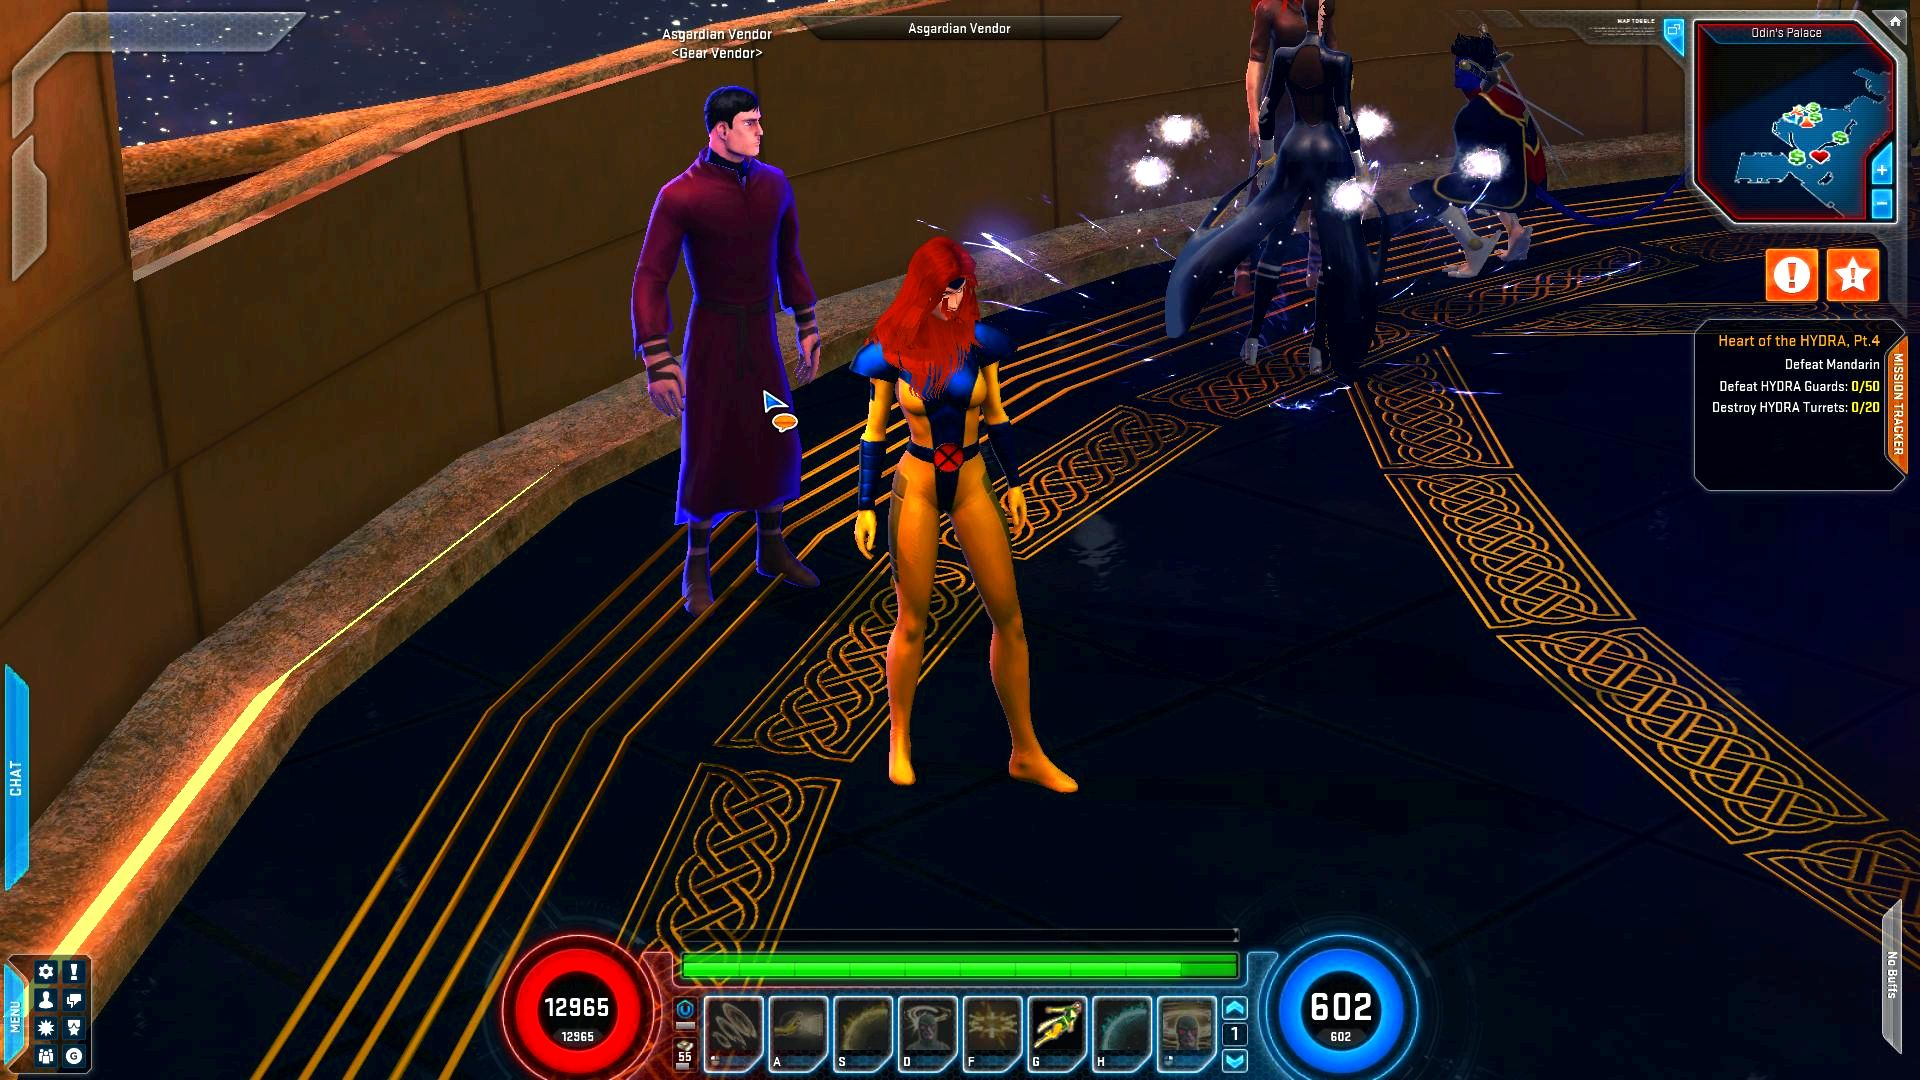 Marvel heroes will get forge of asgard update, mac beta soon the Marvel world including Spider